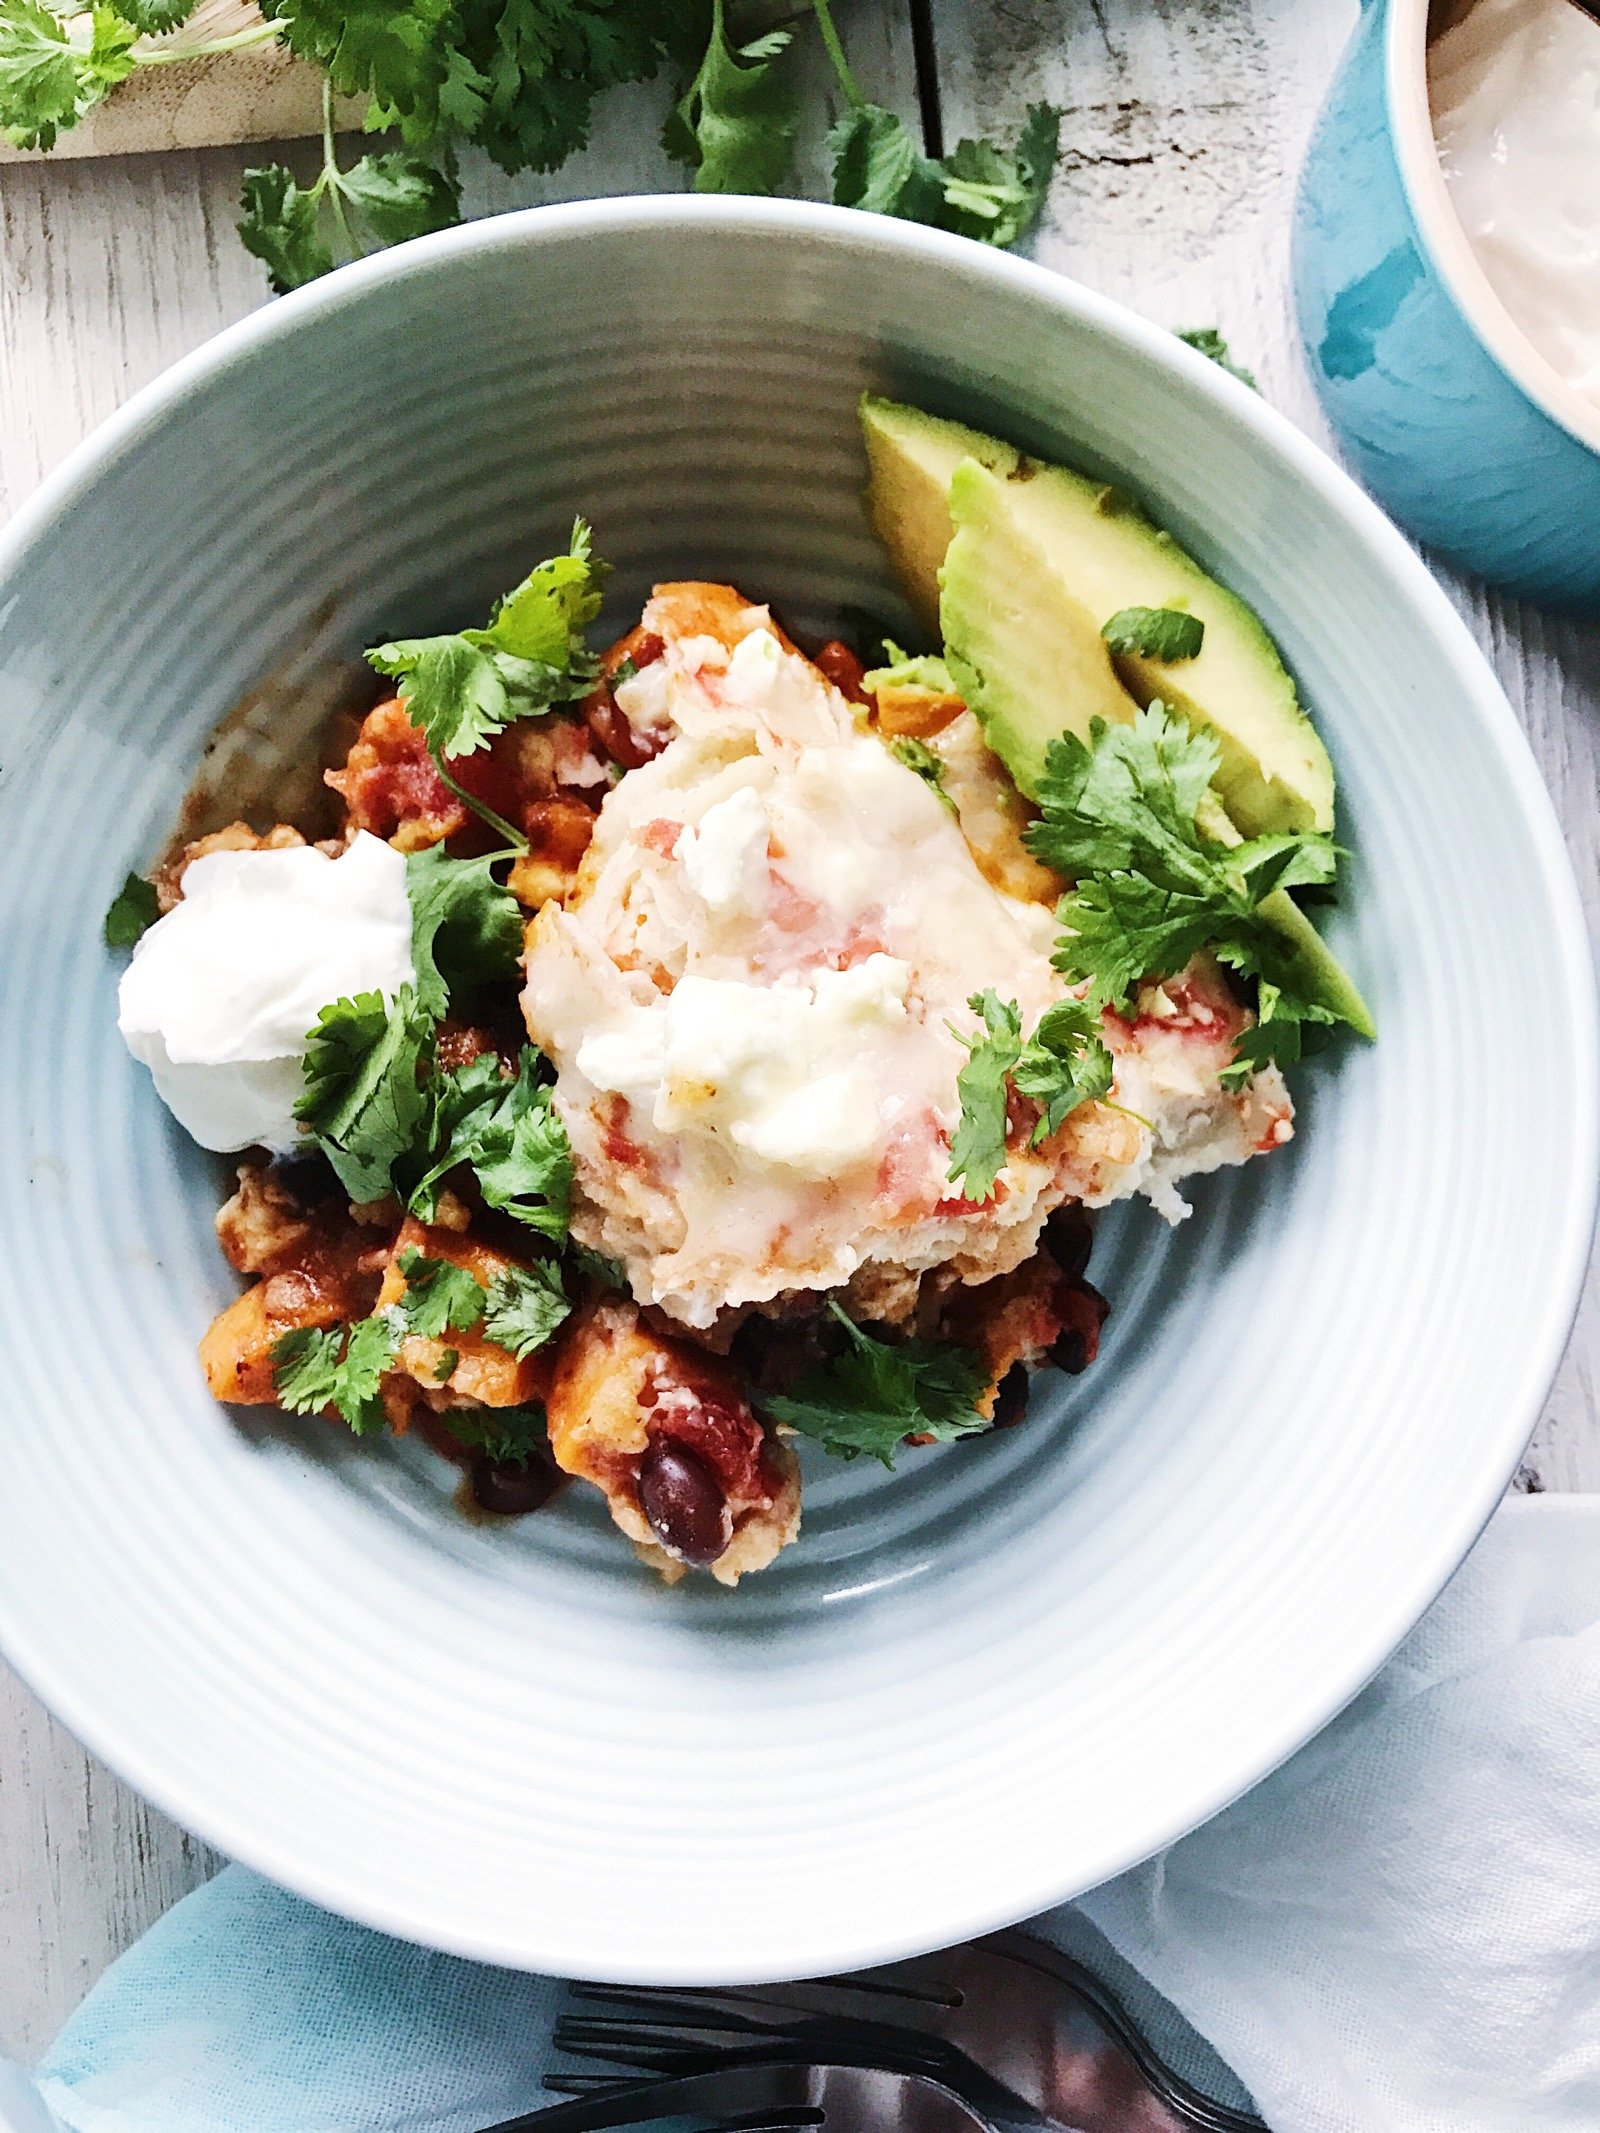 Bowl of Slow Cooker Enchiladas on 100 Days of Real Food